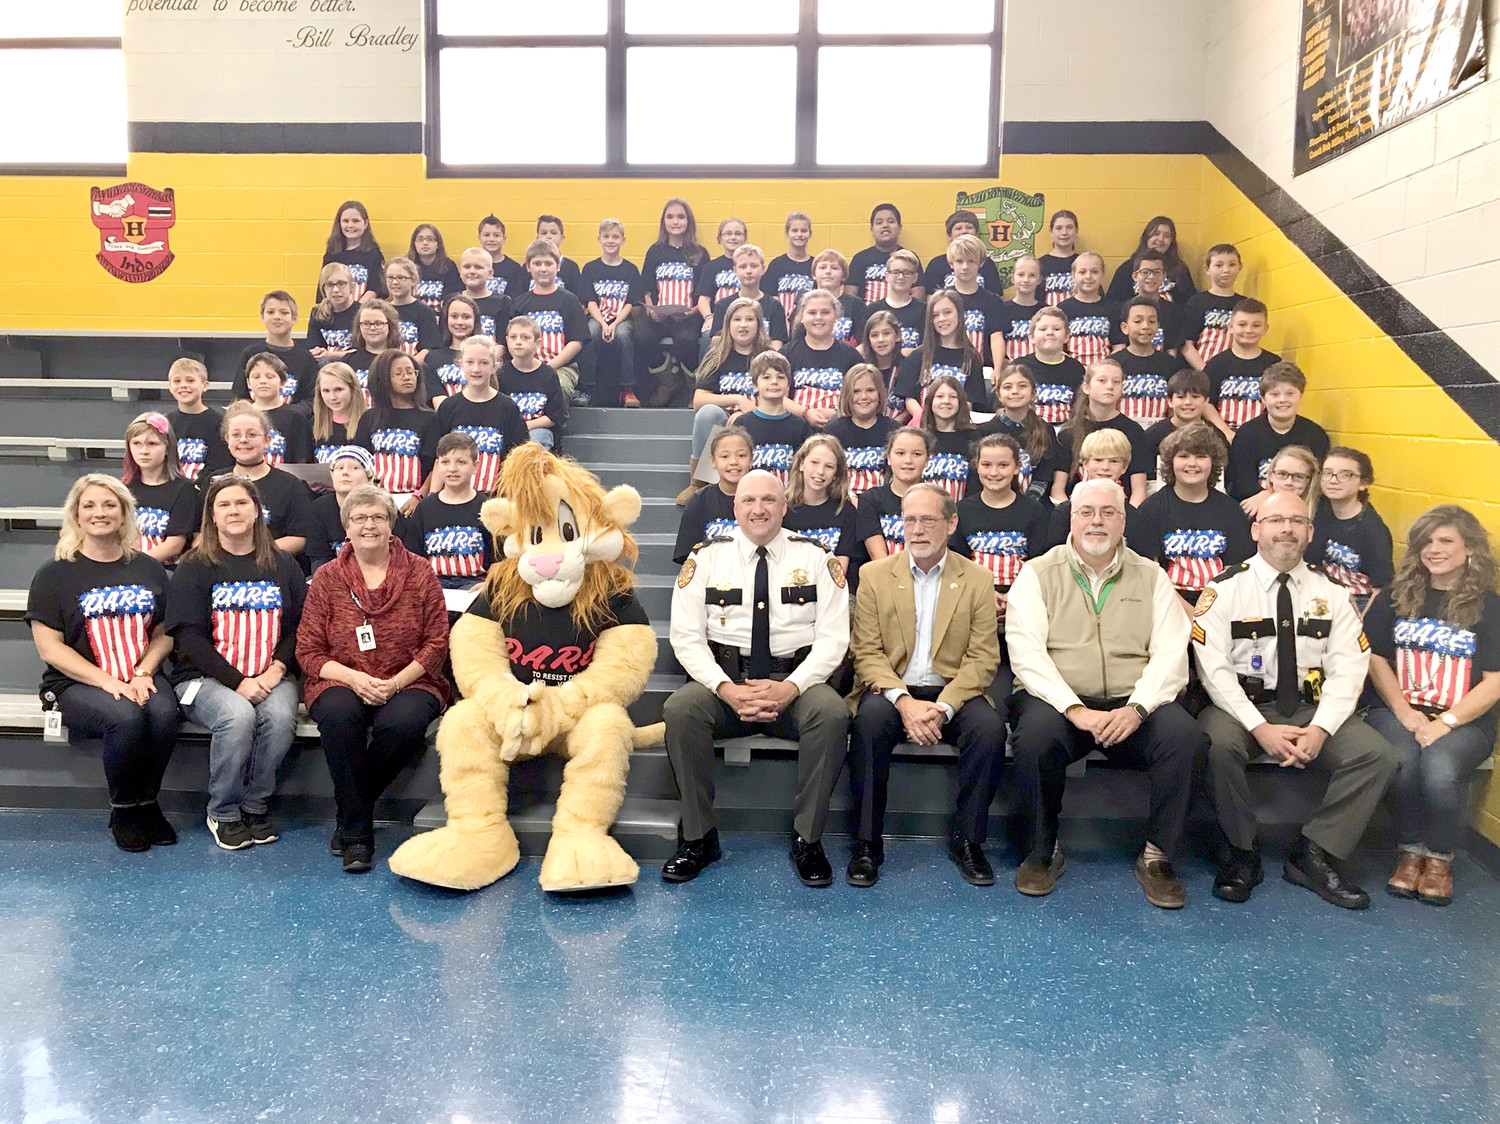 THE BRADLEY COUNTY SHERIFF'S OFFICE held a graduation ceremony at Hopewell Elementary School to honor fifth-graders who completed the DARE program, which was taught by their school resource officer, Sergeant Mitchell Roe. Each student submitted an essay at the conclusion of the program, and the best essay was chosen from each of the three classes. The best essay winners were George Emendorfer, Abrt Whitaker and Jaxson Humble. Those students read their essays during the ceremony, and were presented a medal from Sheriff Eric Watson, Bradley County School Board Member Nancy Casson, Roe, and Principal Tim Riggs. From left (in the bottom photo) are, front row: Emendorfer, Whitaker and Humble; back row: Roe, Bradley County Mayor D. Gary Davis, Darren the Lion (DARE mascot), Watson, Riggs and Casson.